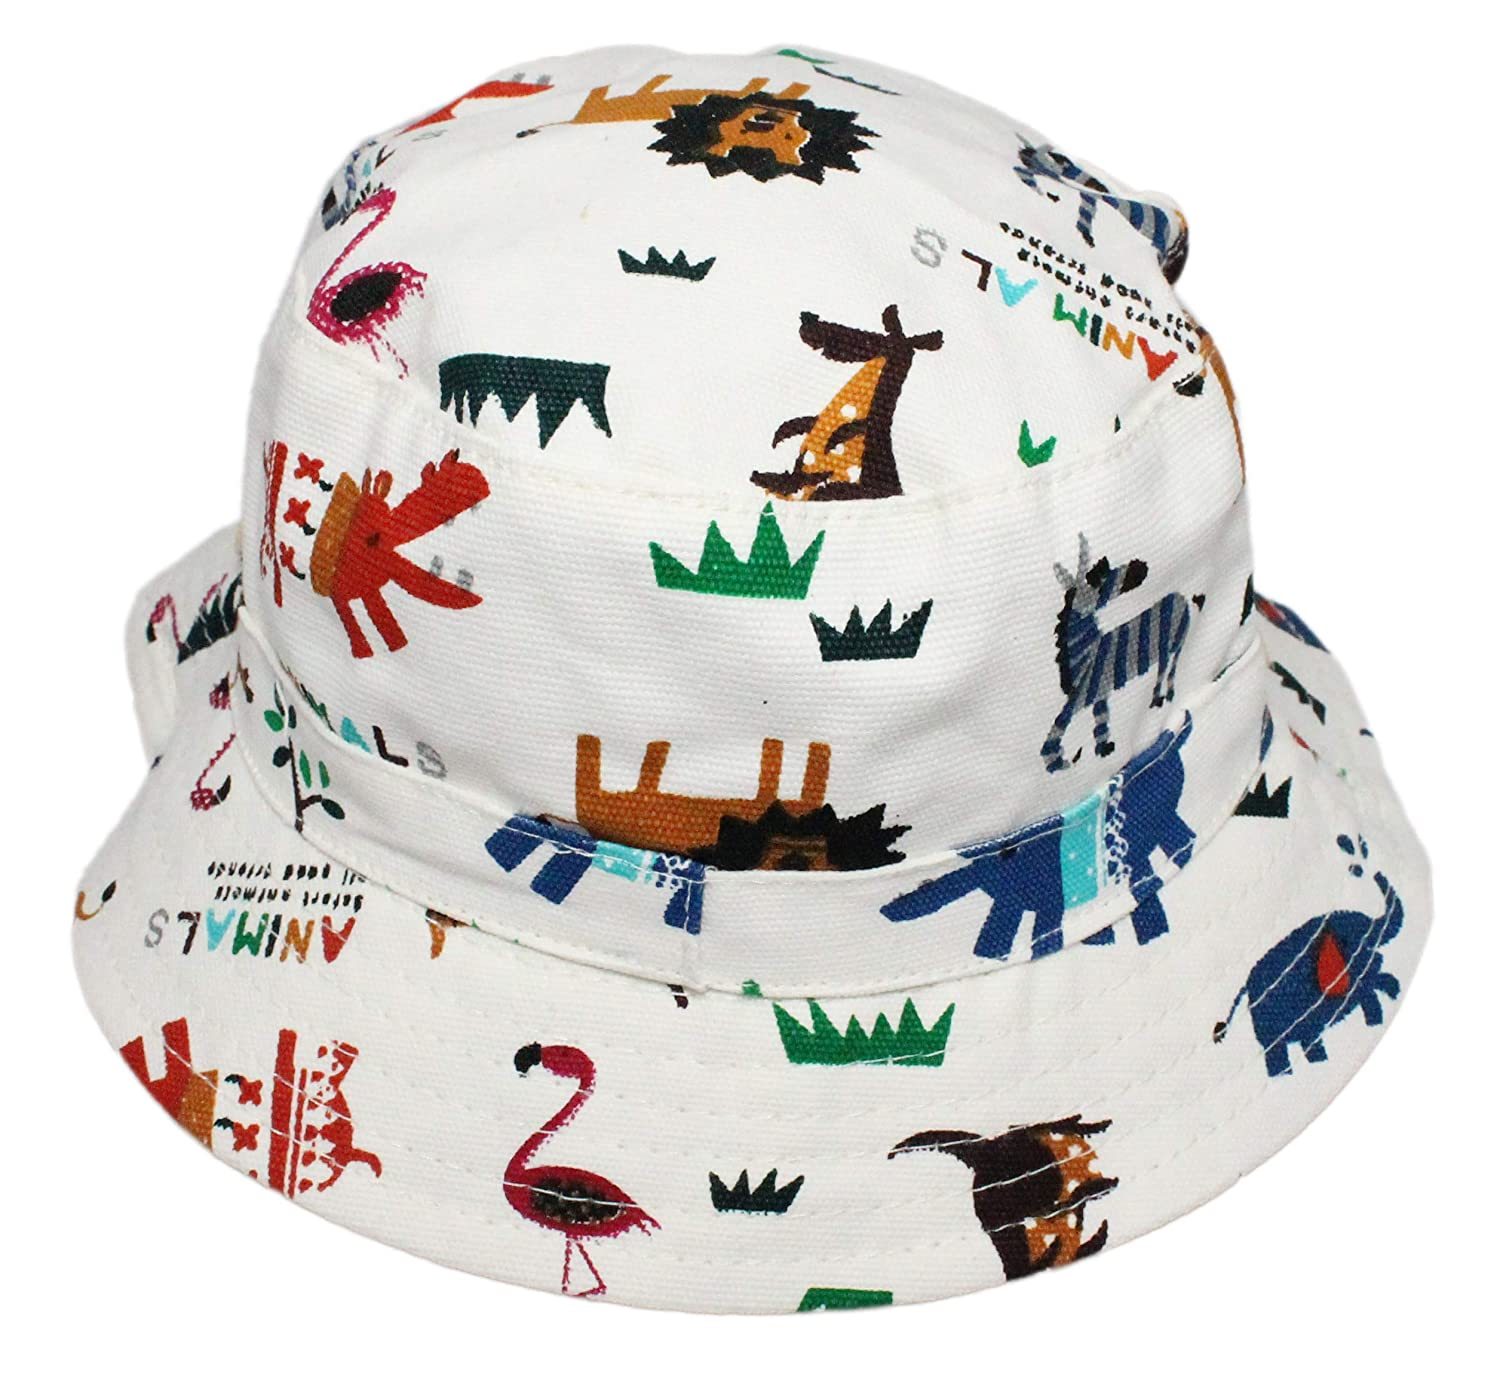 Boys Girls Canvas Cotton Zoo Animal Bucket Sun Hat Age 6 Months up to 6 Years Old with Chin Strap